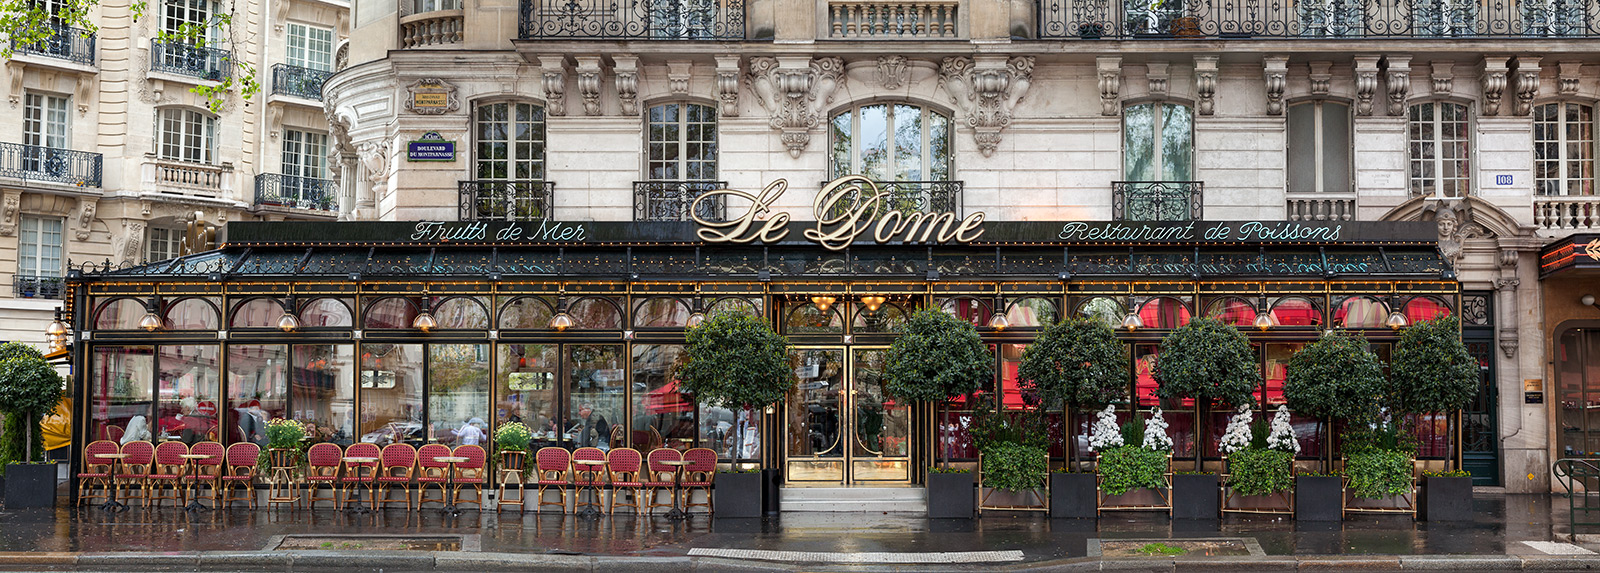 Le Dome, Paris by James & Karla Murray